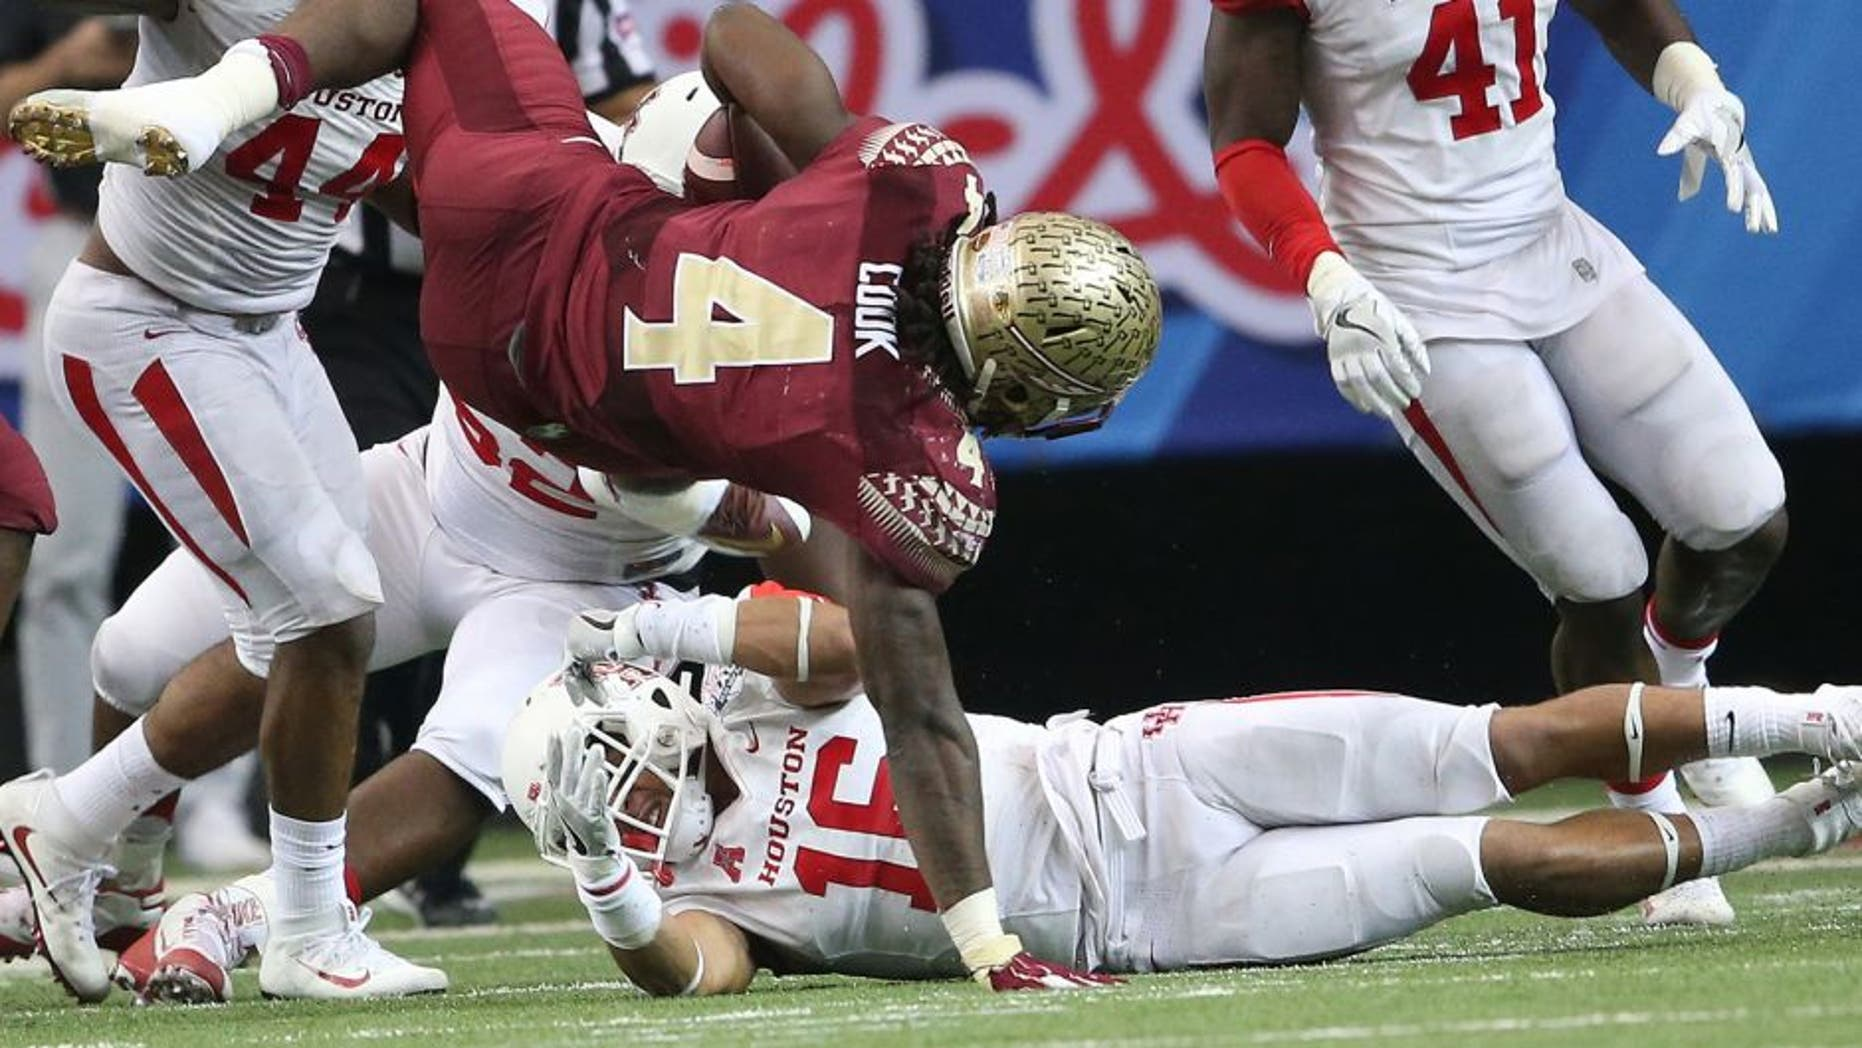 Florida State running back Dalvin Cook (4) falls as Houston safety Adrian McDonald (16) looks on during the second half of the Peach Bowl NCAA college football game, Thursday, Dec. 31, 2015, in Atlanta. (AP Photo/John Bazemore)